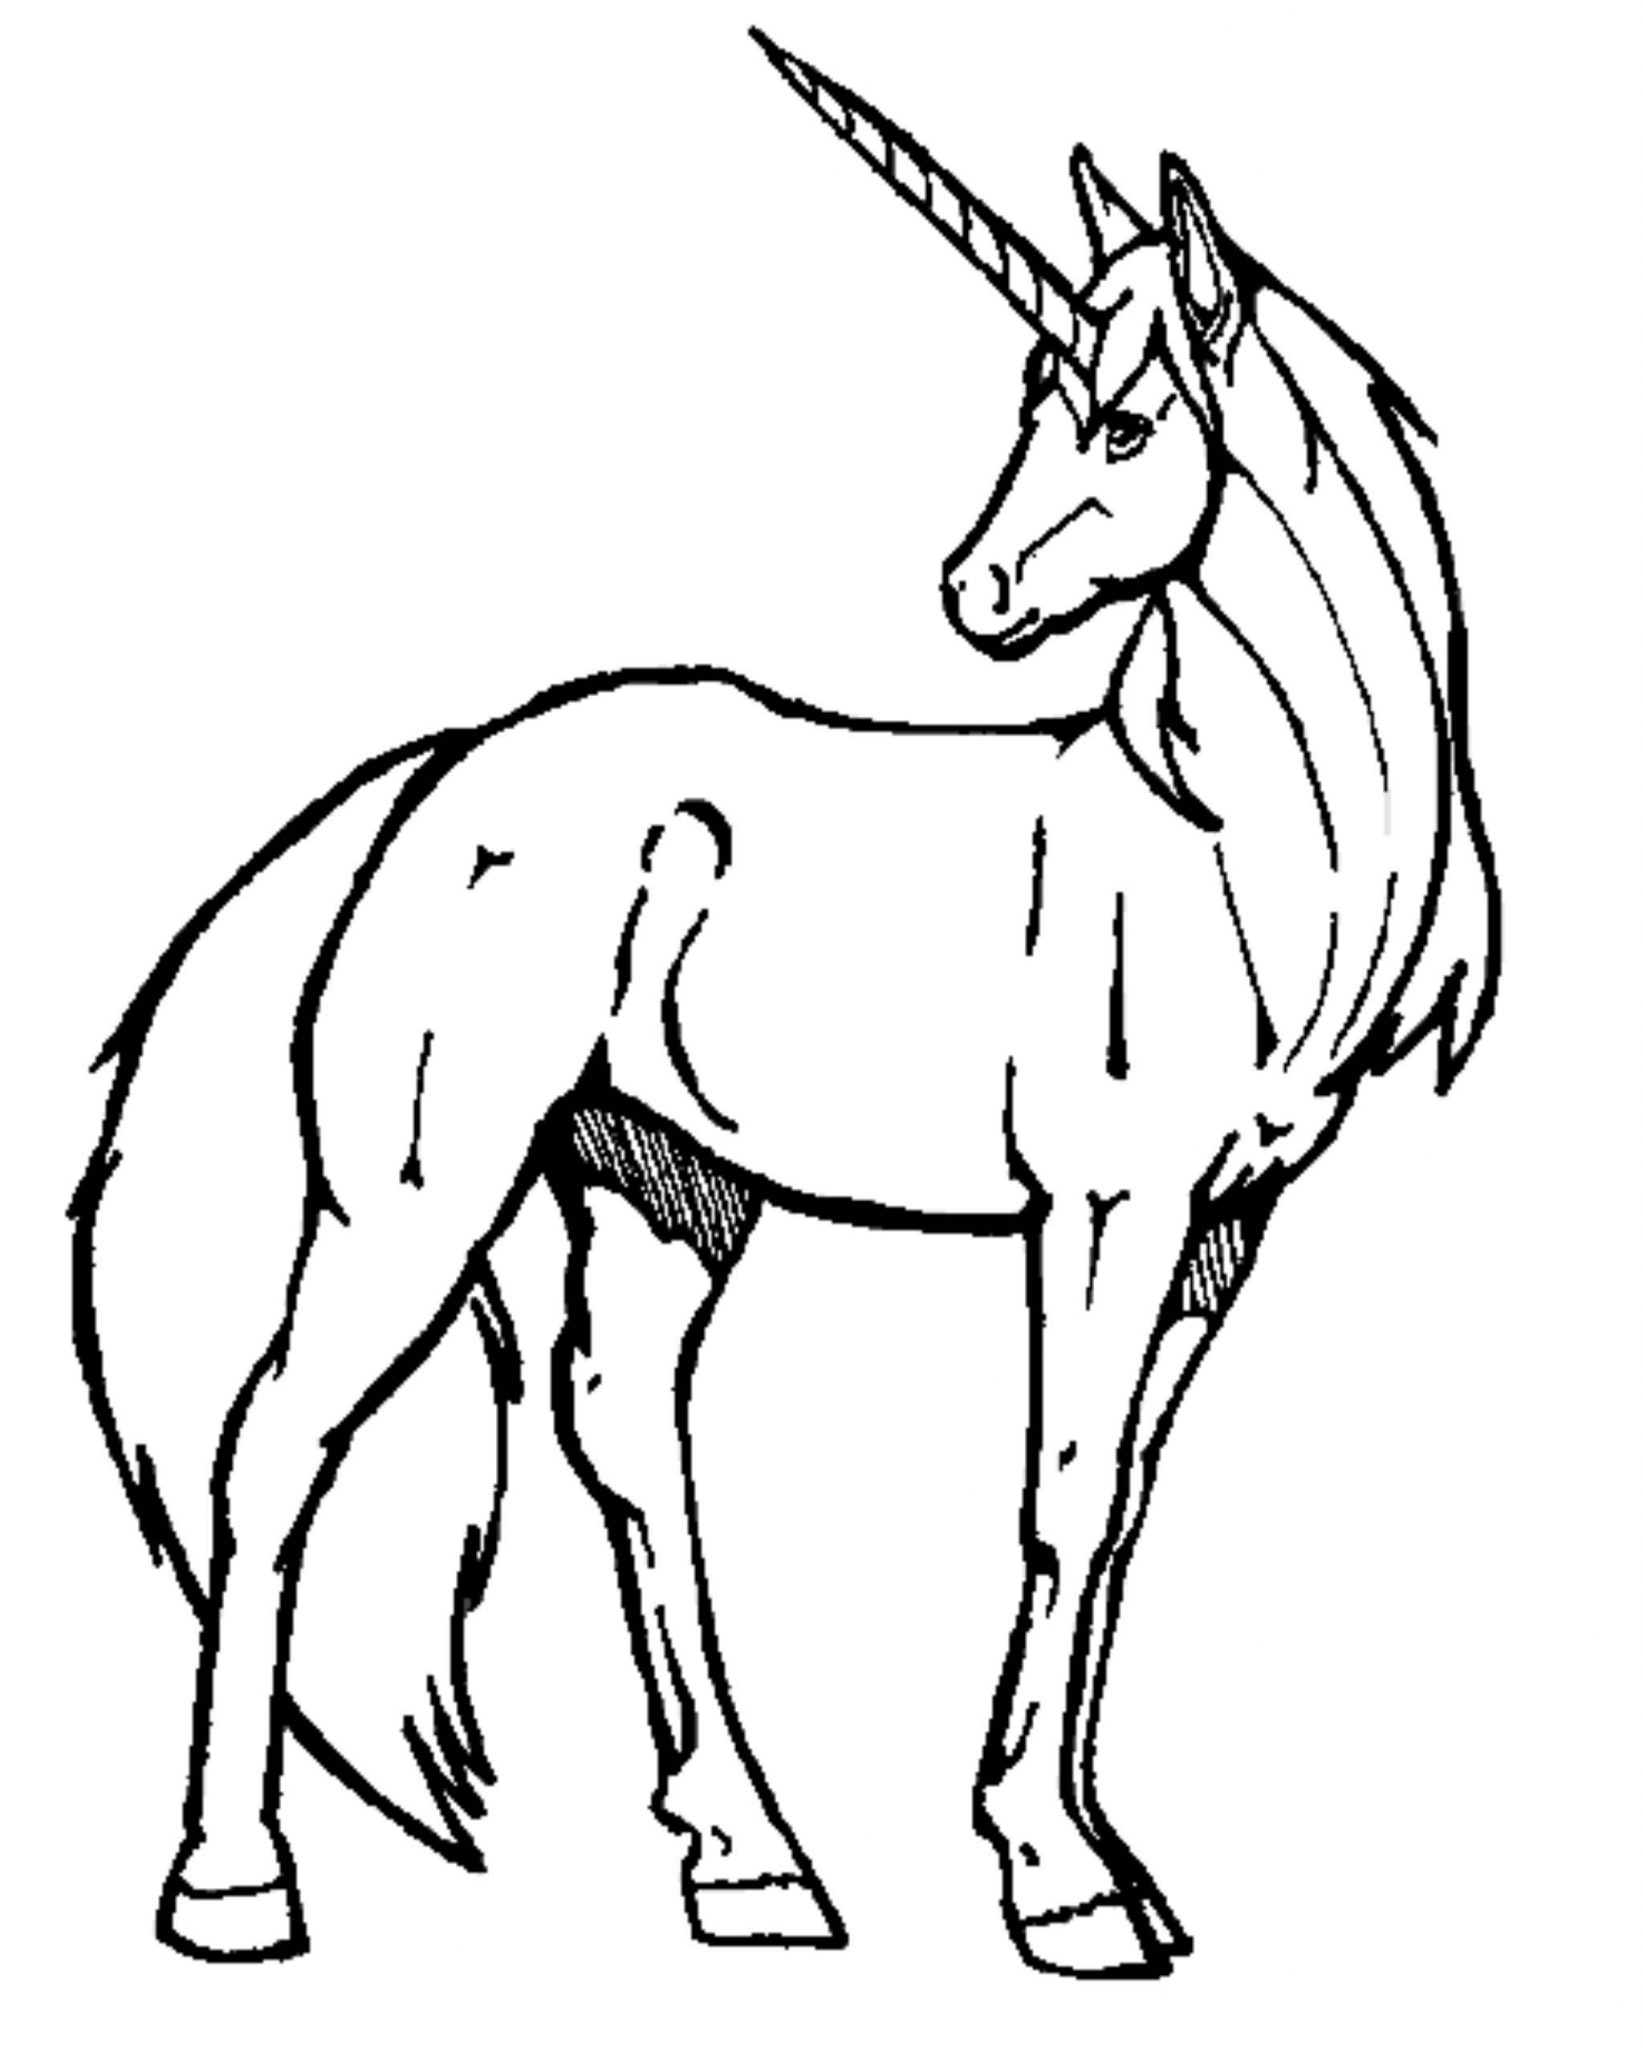 easy-unicorn-coloring-pages | | BestAppsForKids.com